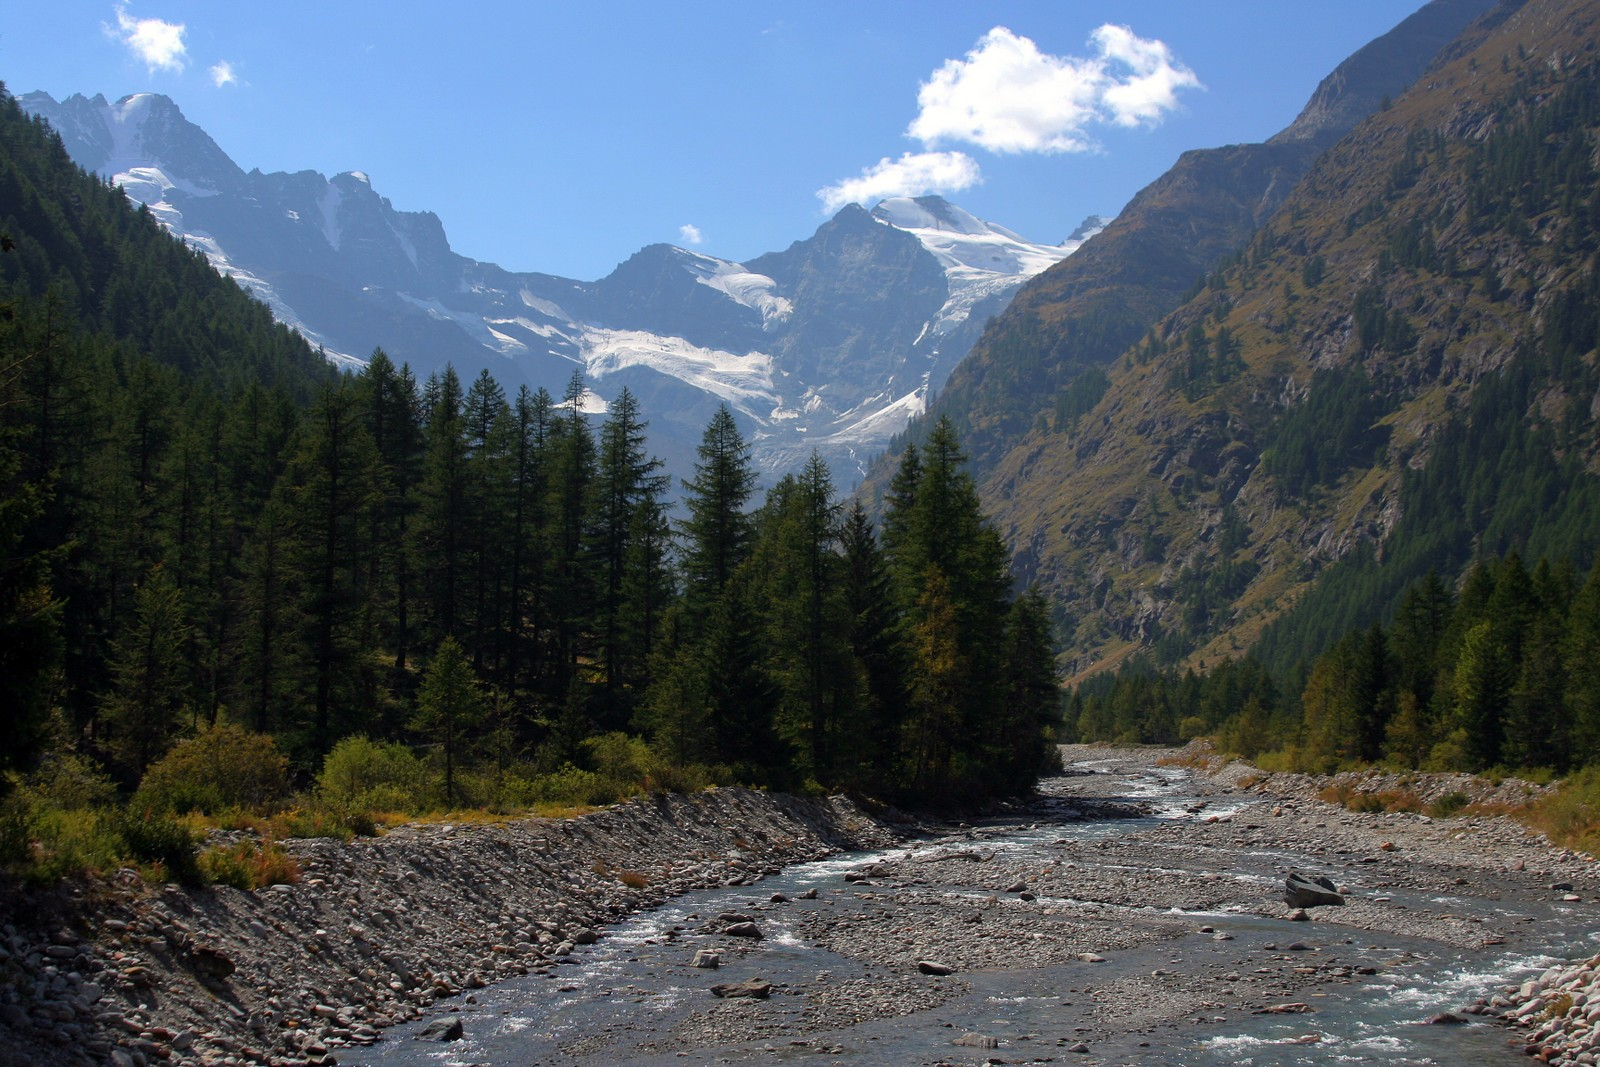 Valnontey River and Gran Paradiso Peak